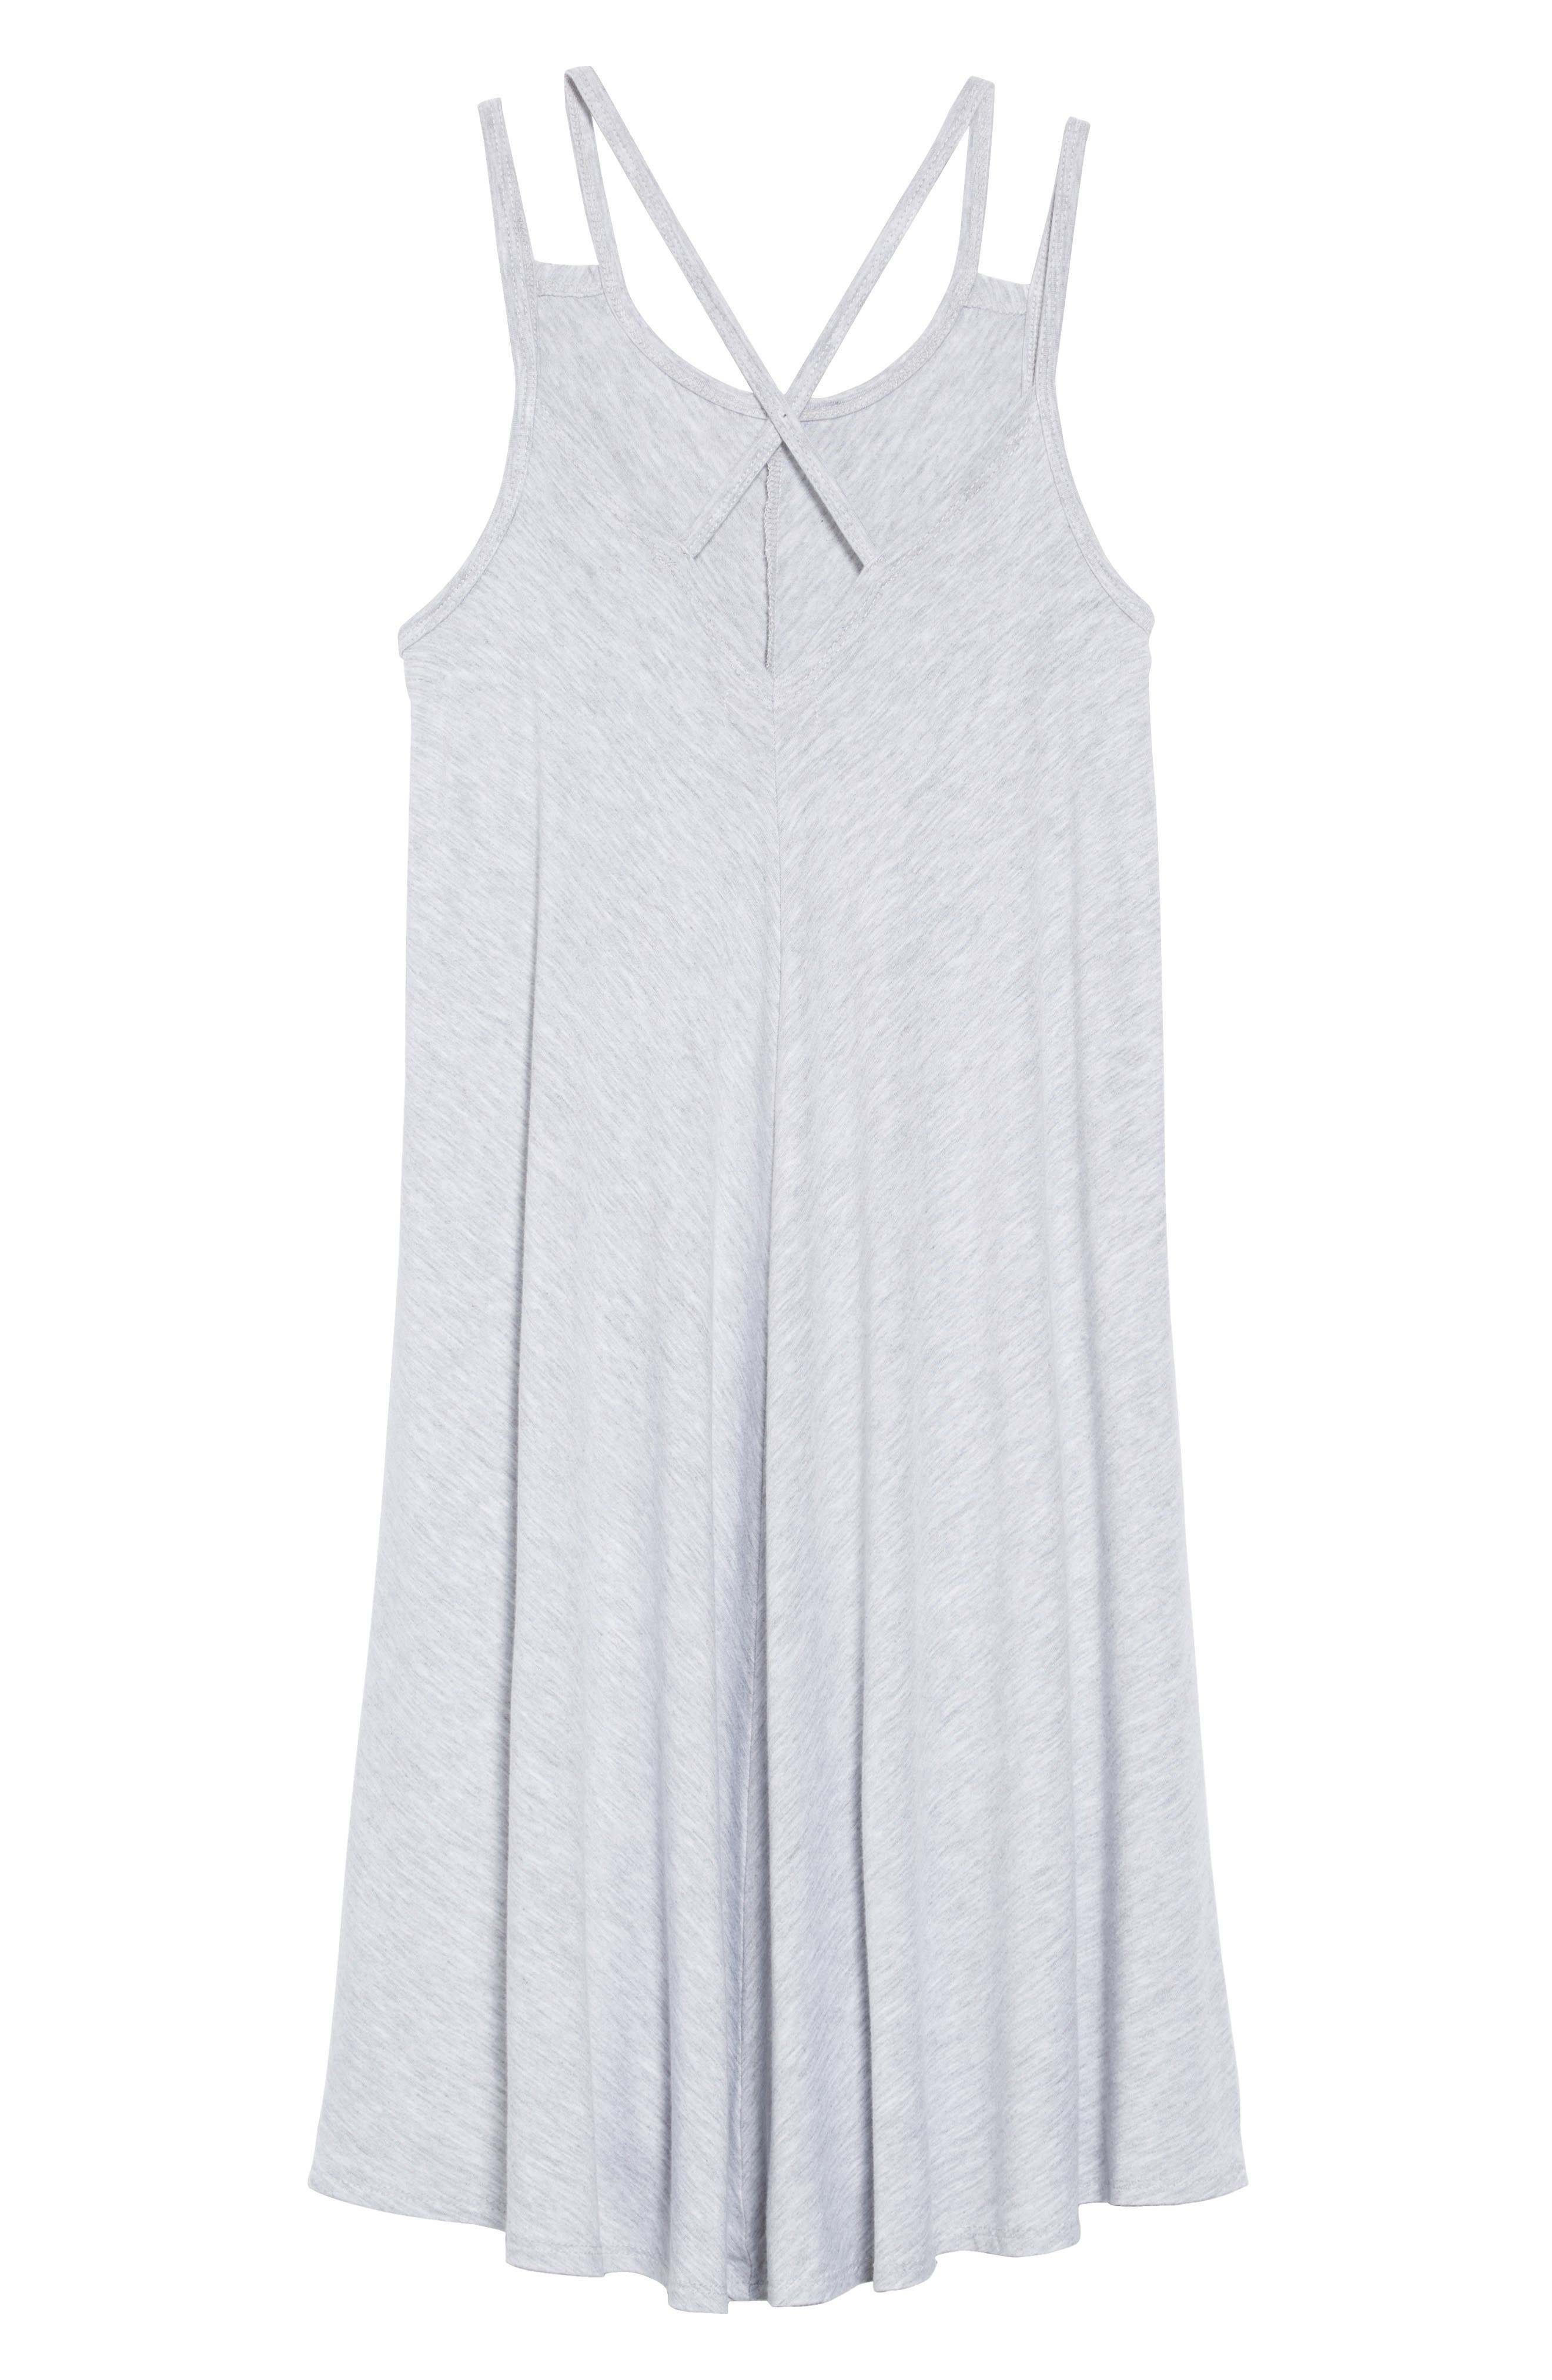 Strappy Dress,                             Alternate thumbnail 2, color,                             Grey Ash Heather